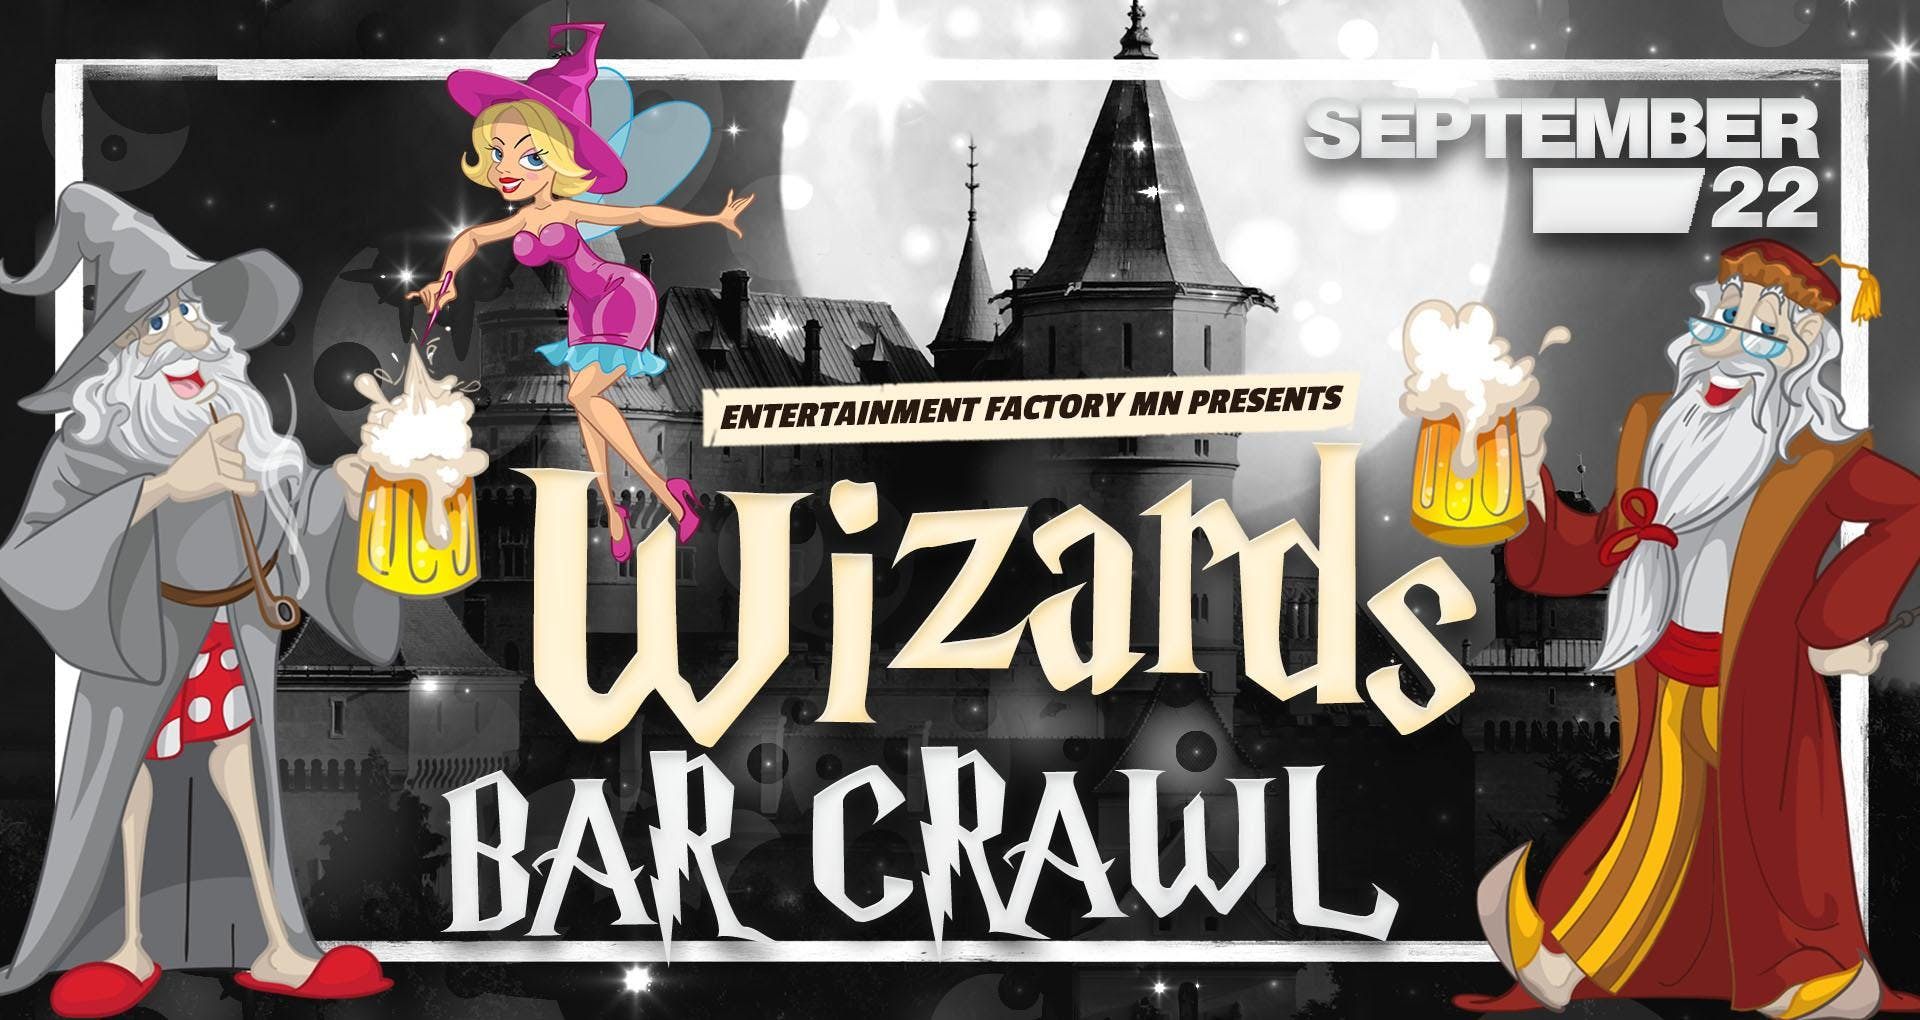 Wizards Bar Crawl